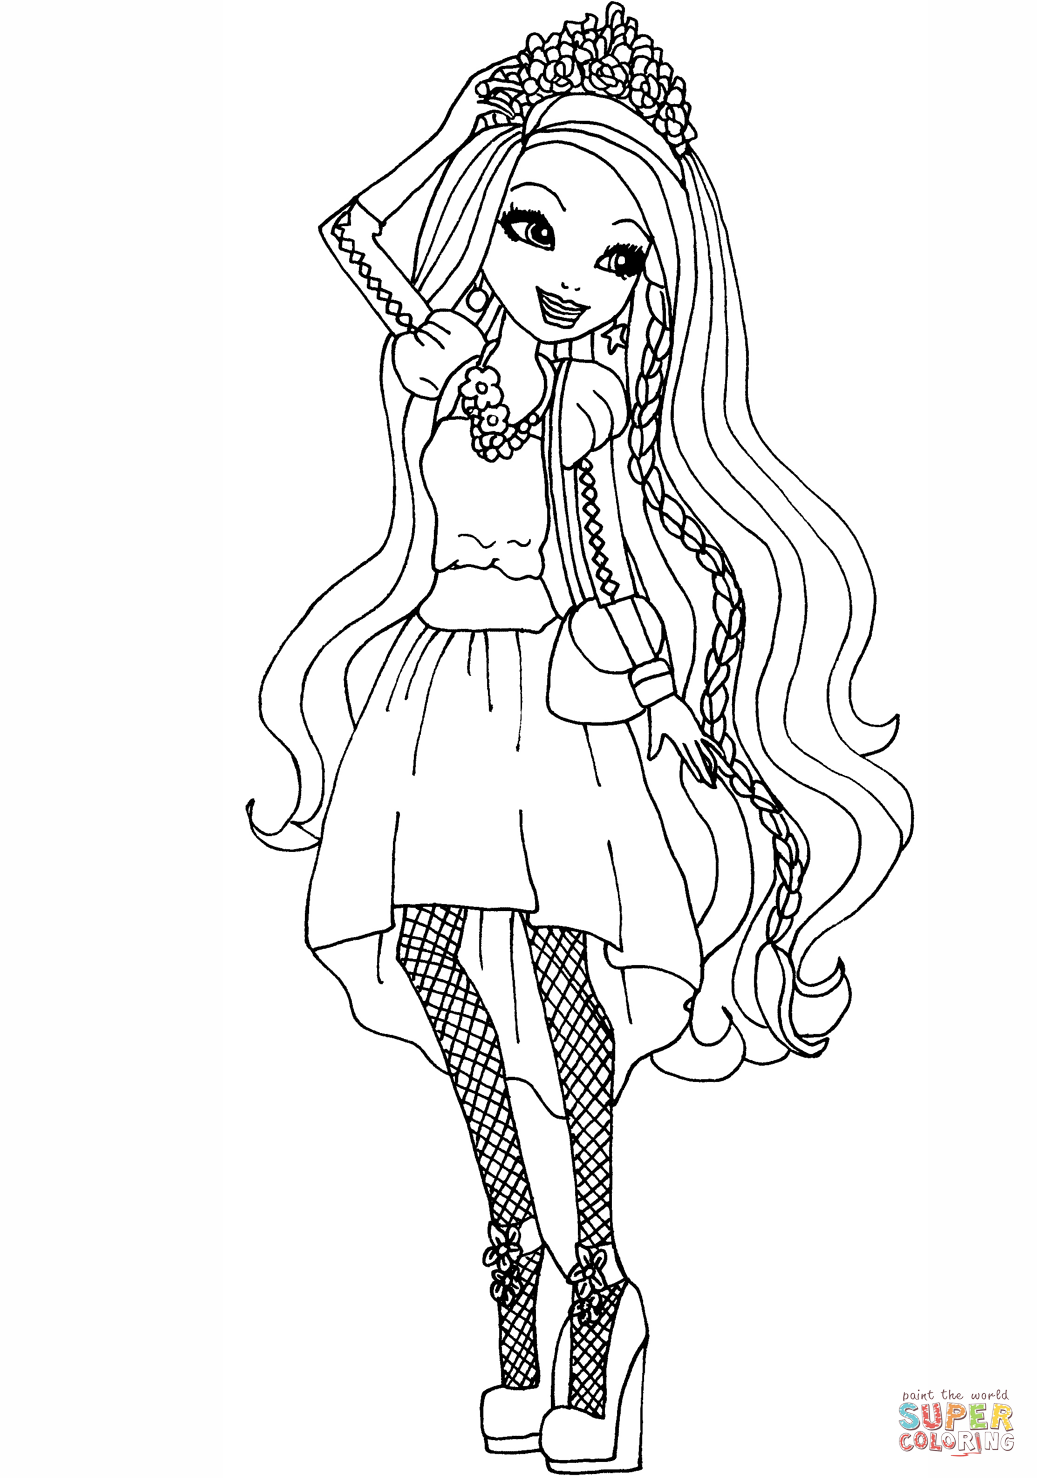 Monster High Meerjungfrau Ausmalbilder : Resultado De Imagem Para Ever After High Ginger Para Colorir Todas